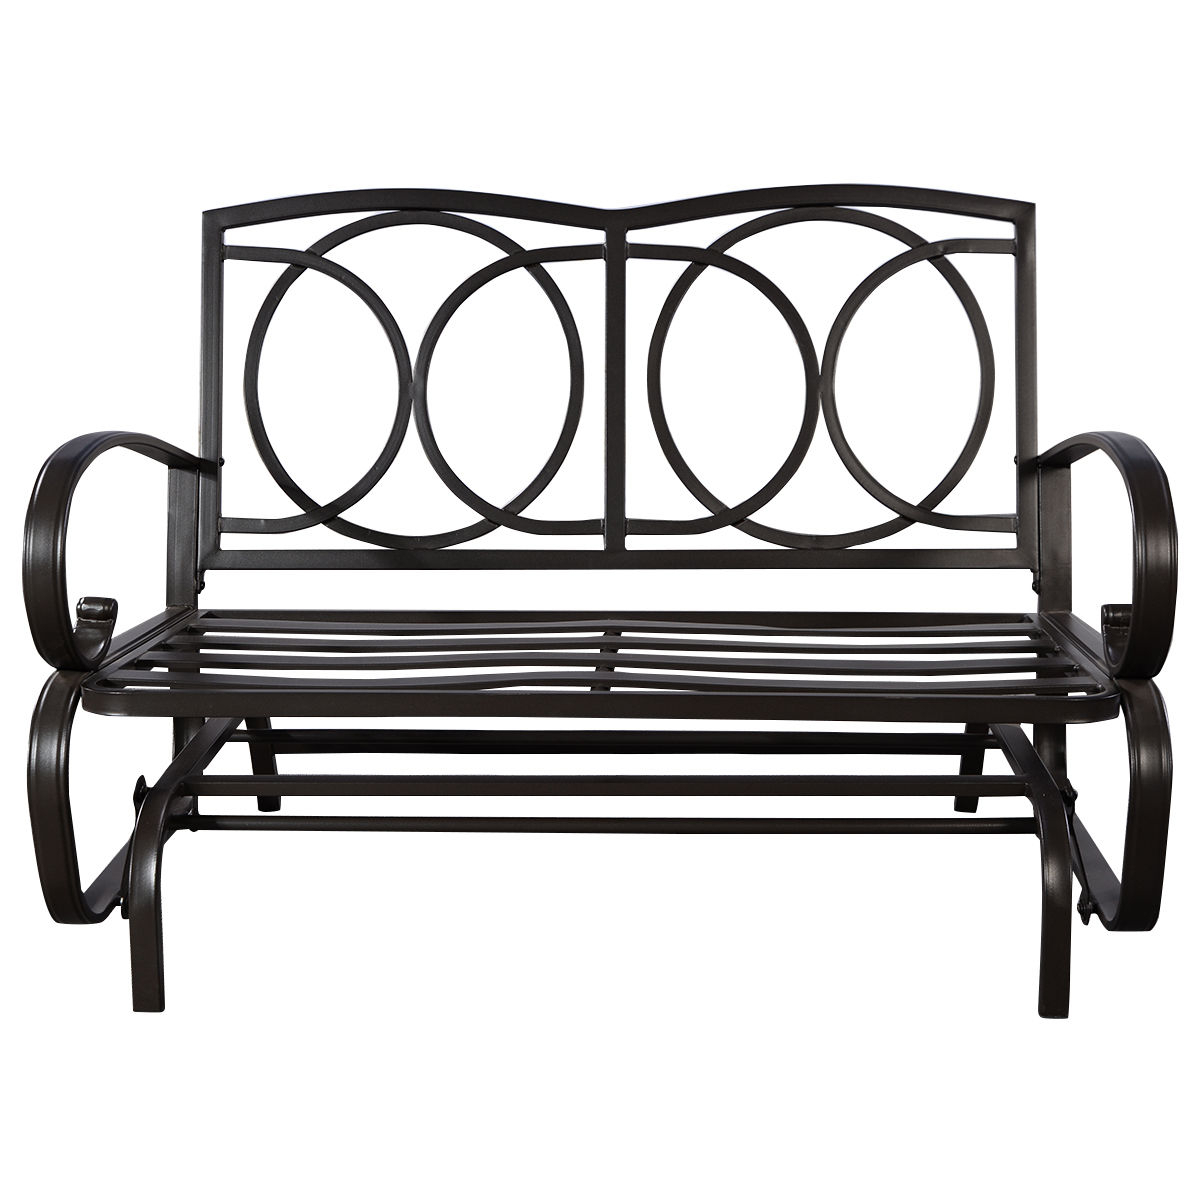 Details About Glider Outdoor Patio Rocking Bench Loveseat Cushioned Seat Steel Frame Furniture Within Outdoor Patio Swing Porch Rocker Glider Benches Loveseat Garden Seat Steel (View 24 of 25)